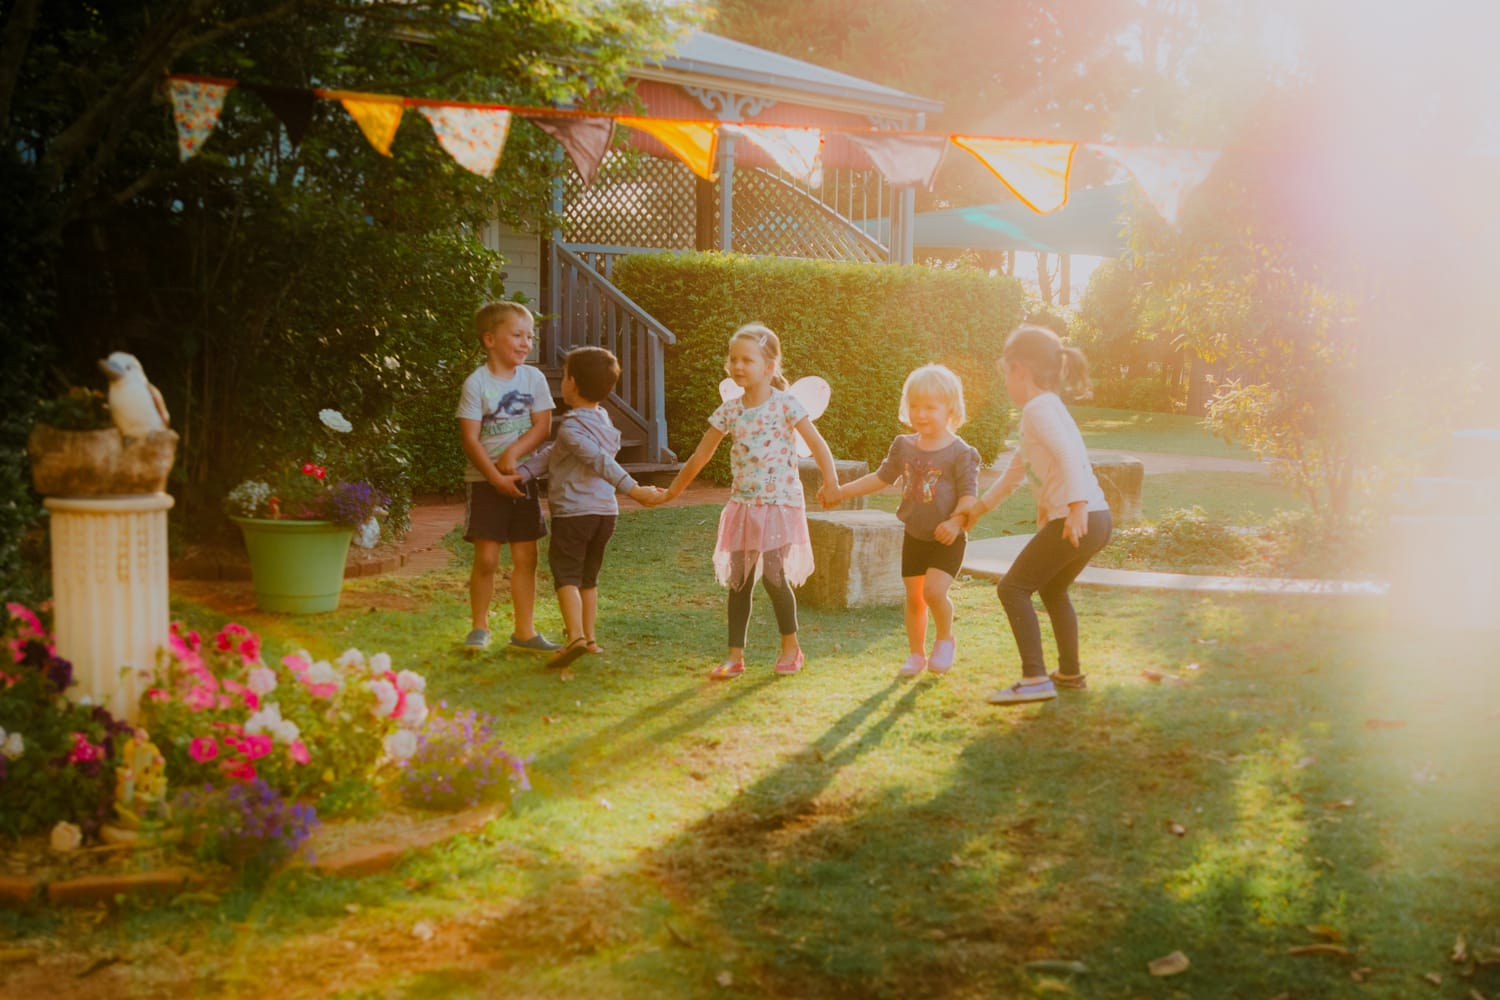 Chiselhurst Kindy Toowoomba front garden in the afternoon children holding hands playing